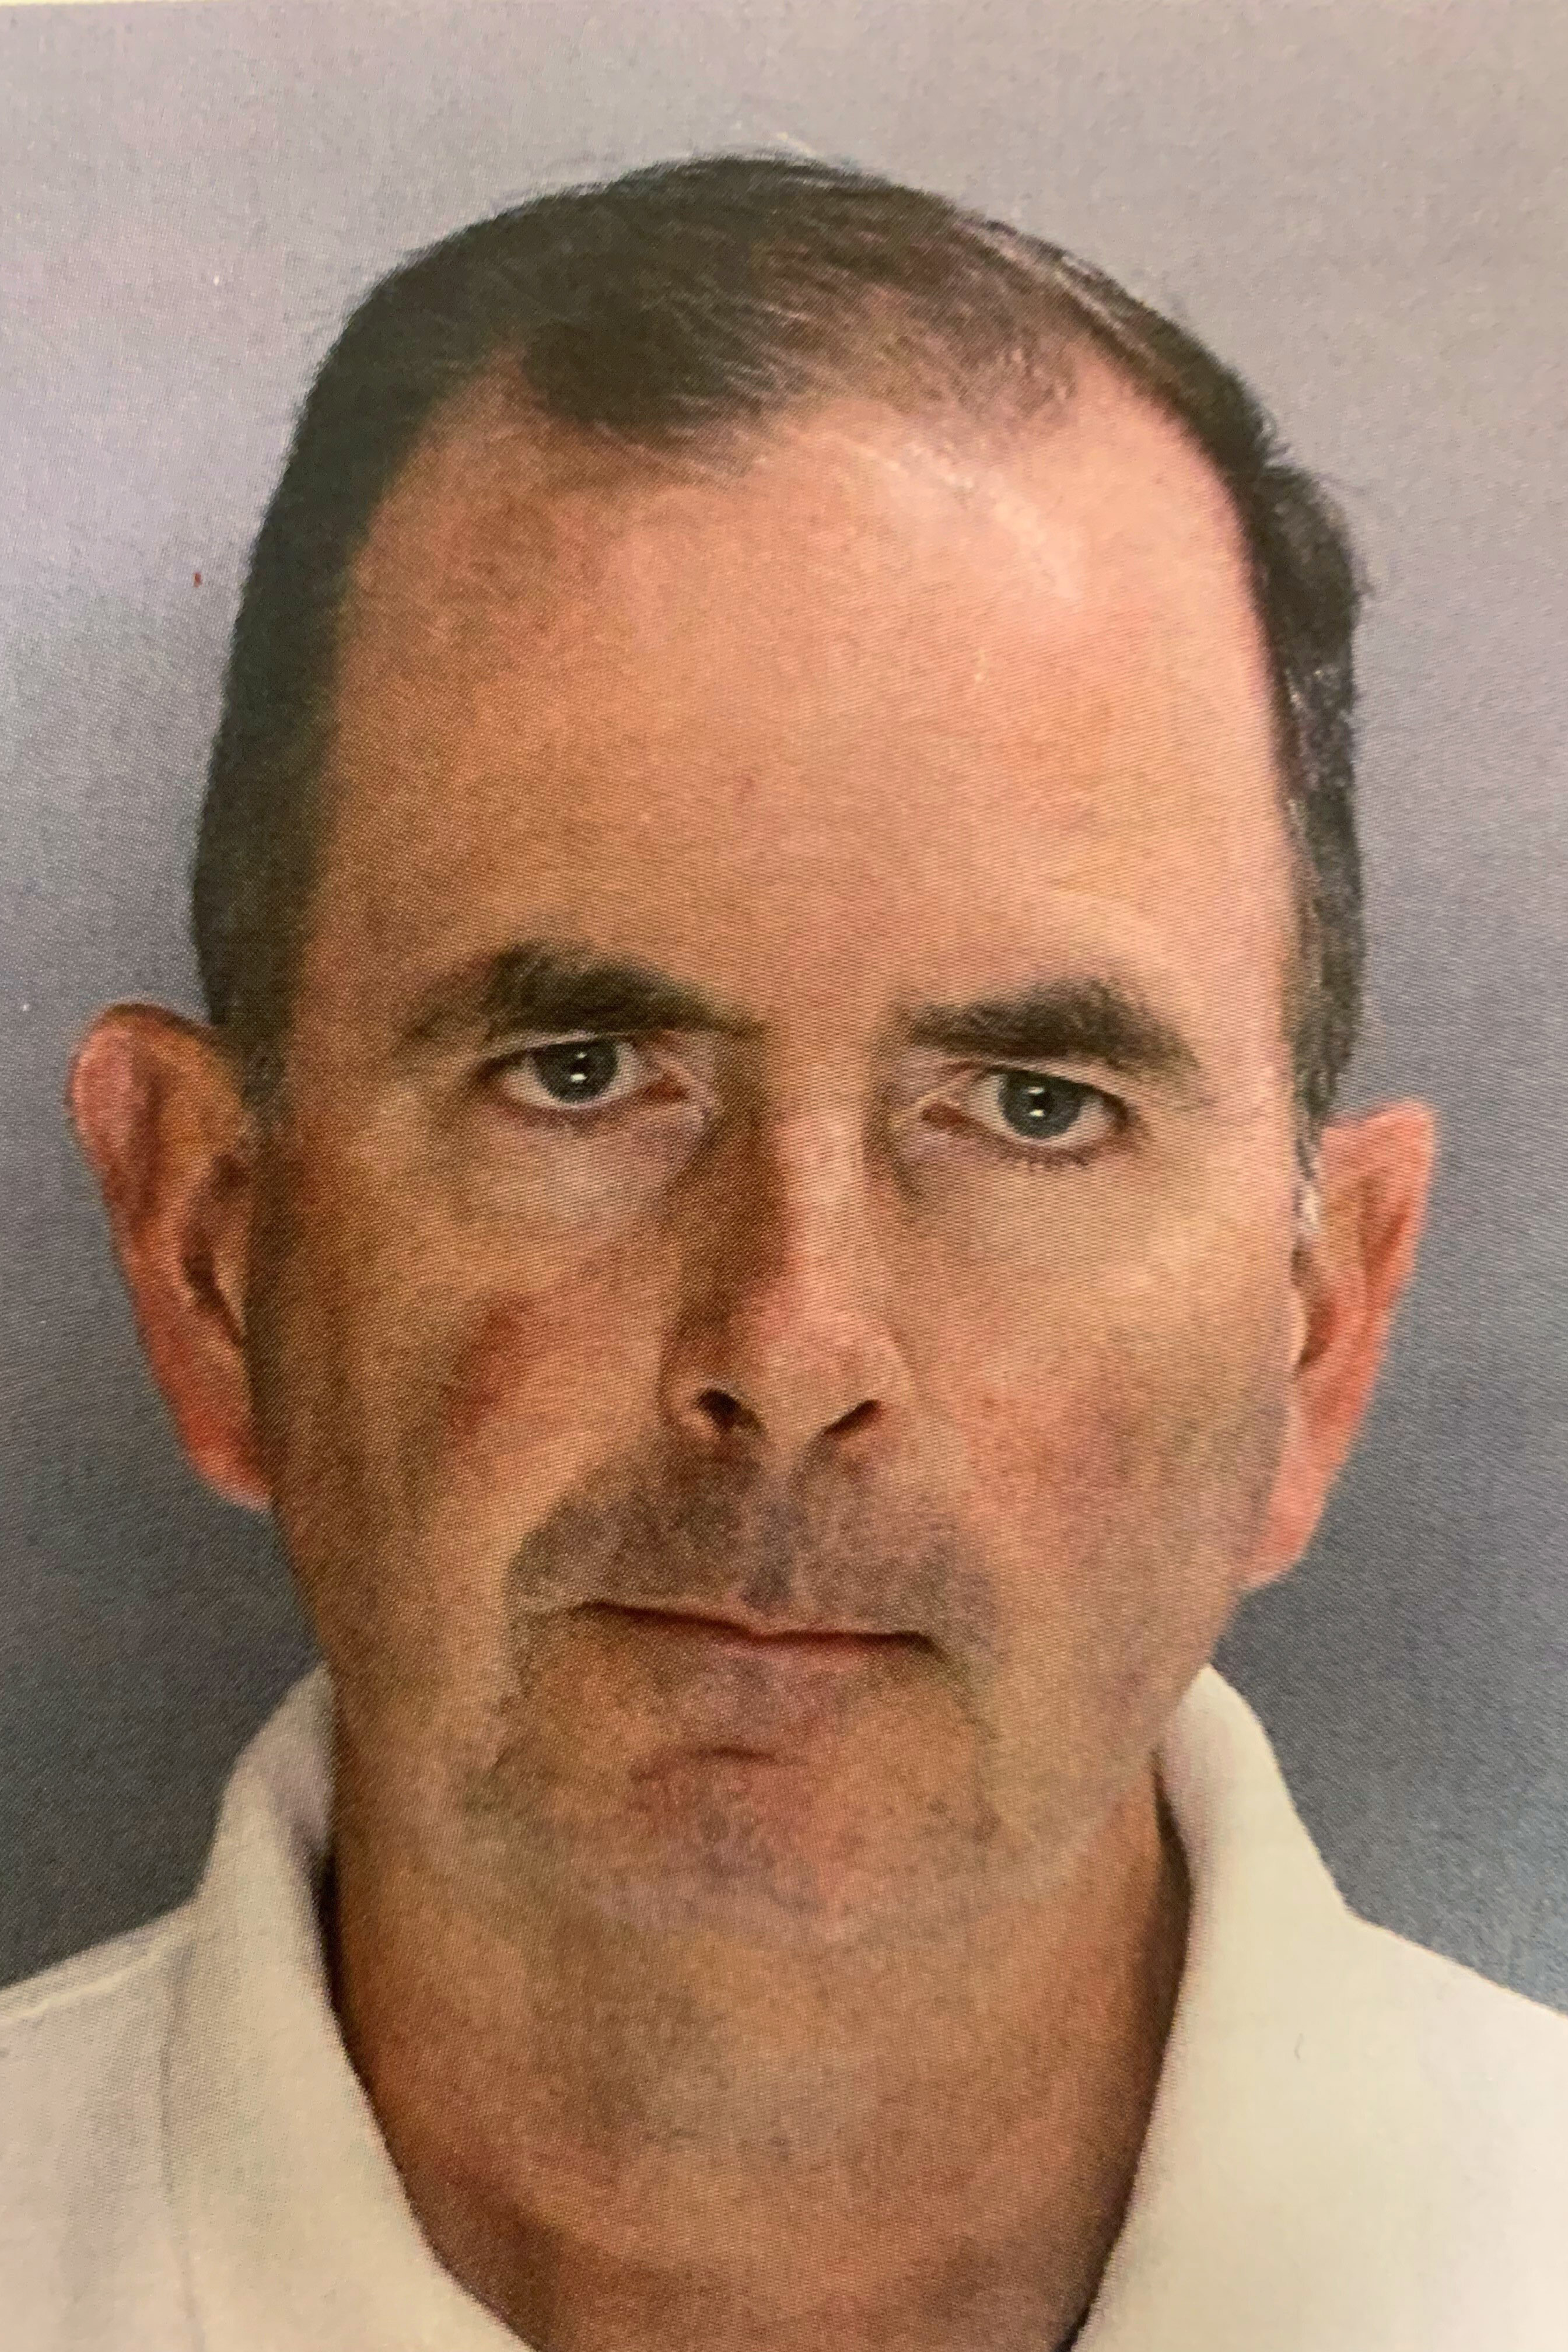 Catholic priest accused of stealing $100K from church for travel, boyf